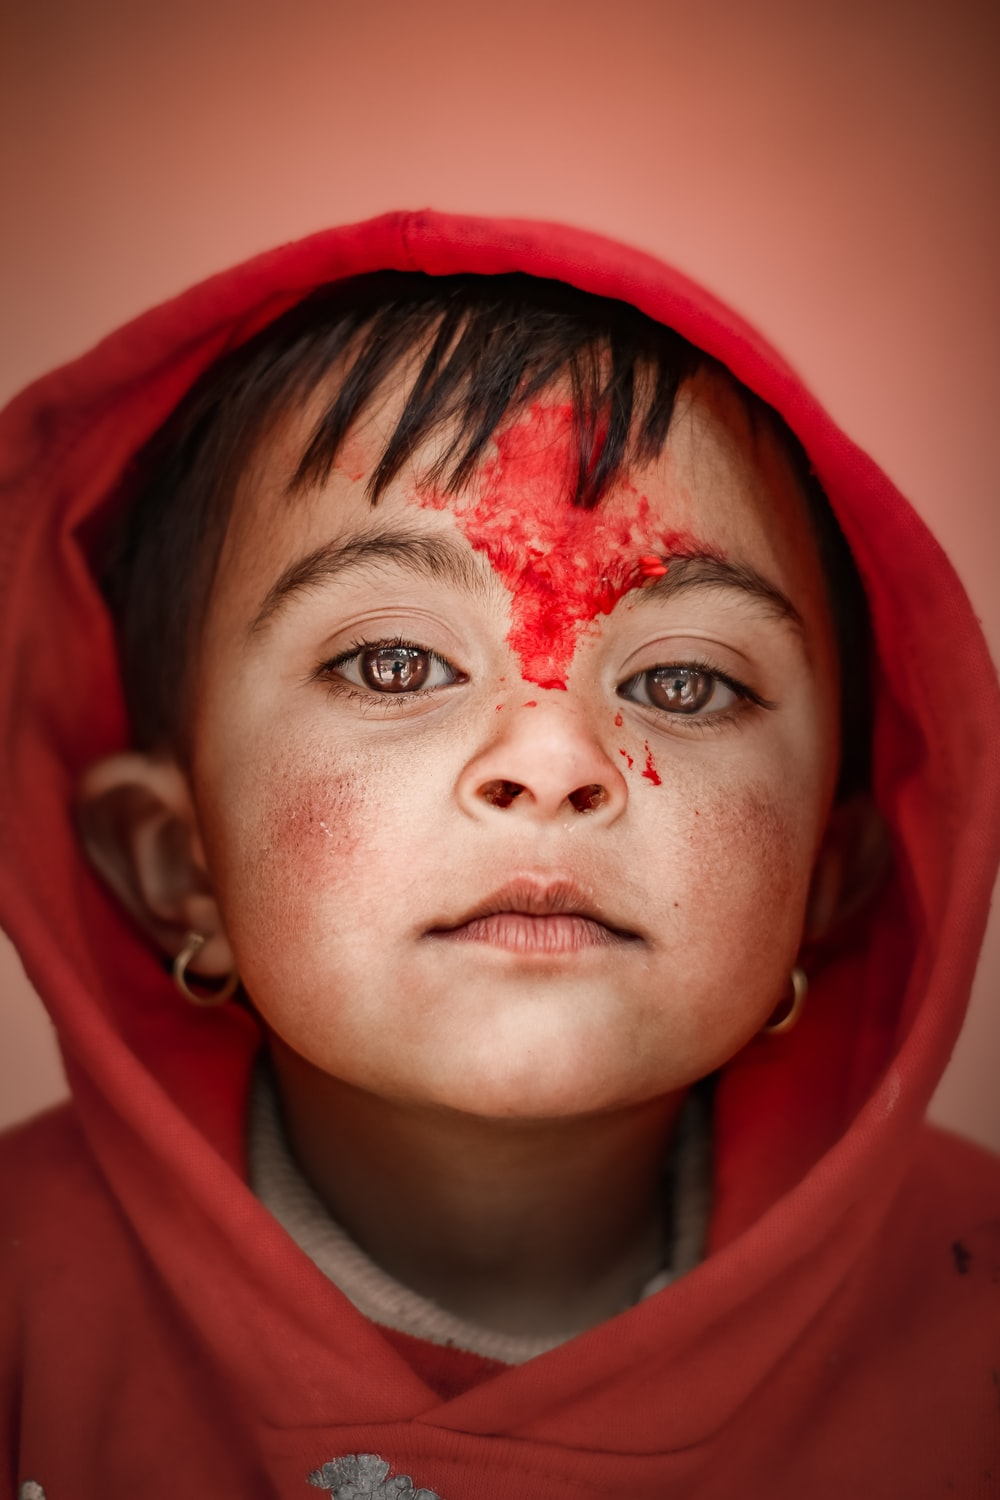 woman in red hoodie with red powder on face